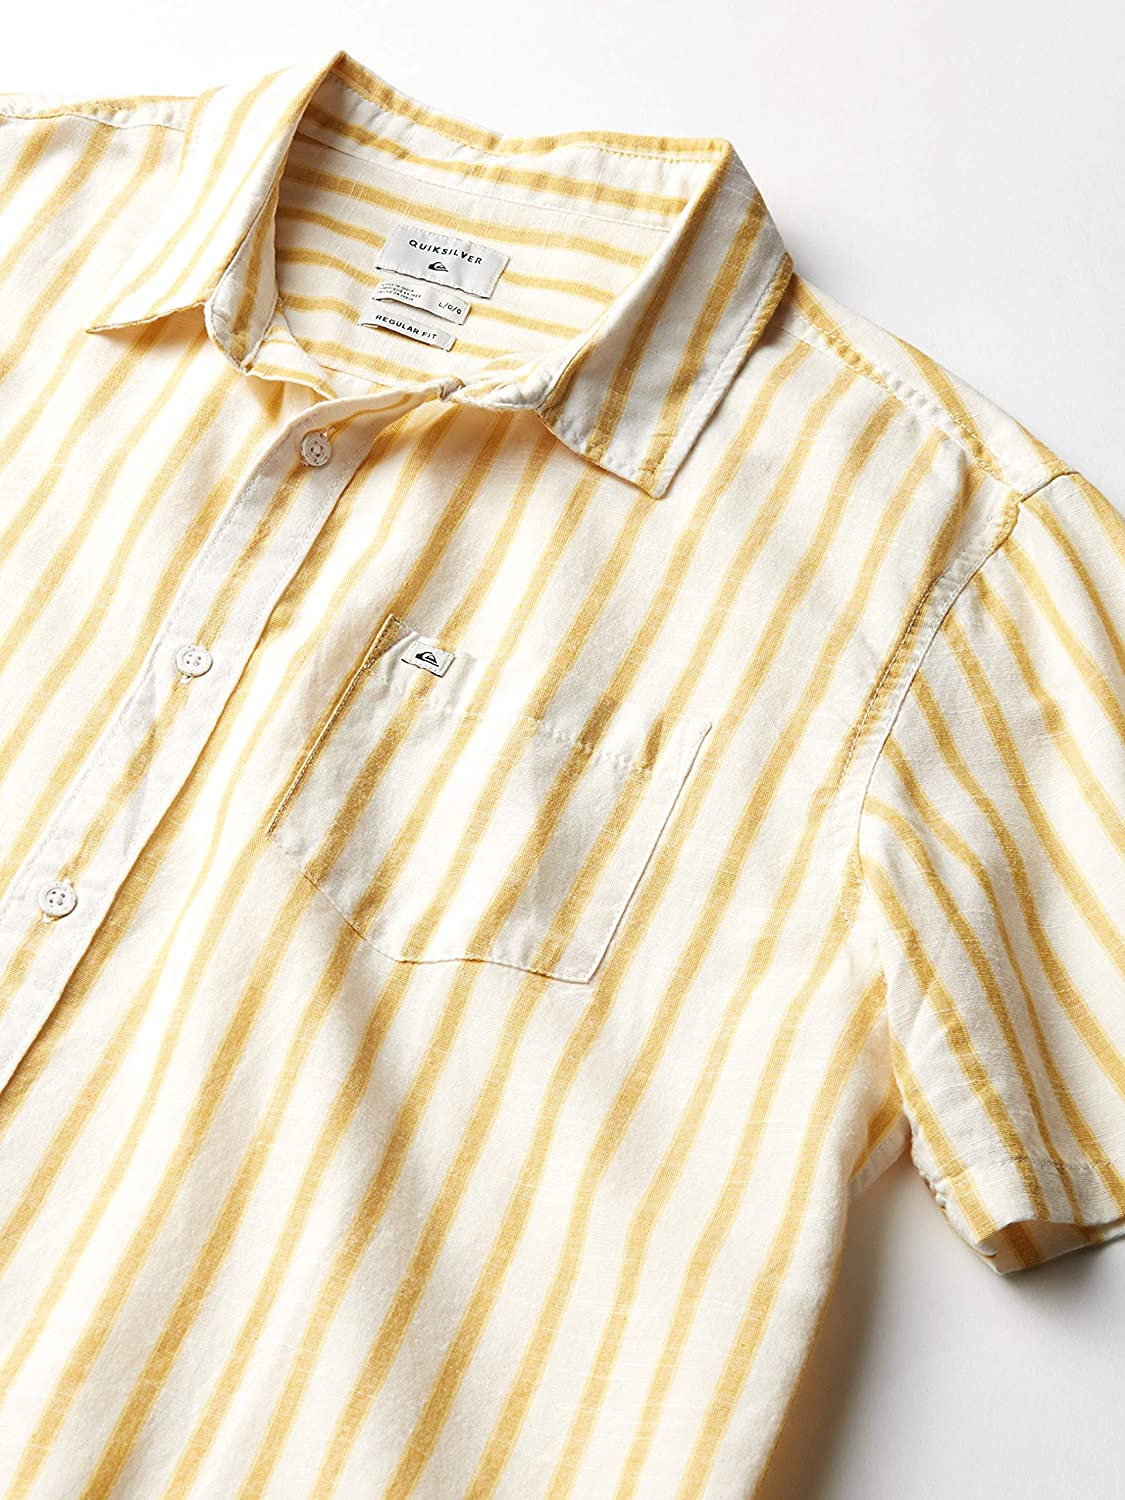 Quiksilver Mens Oxford Lines Woven